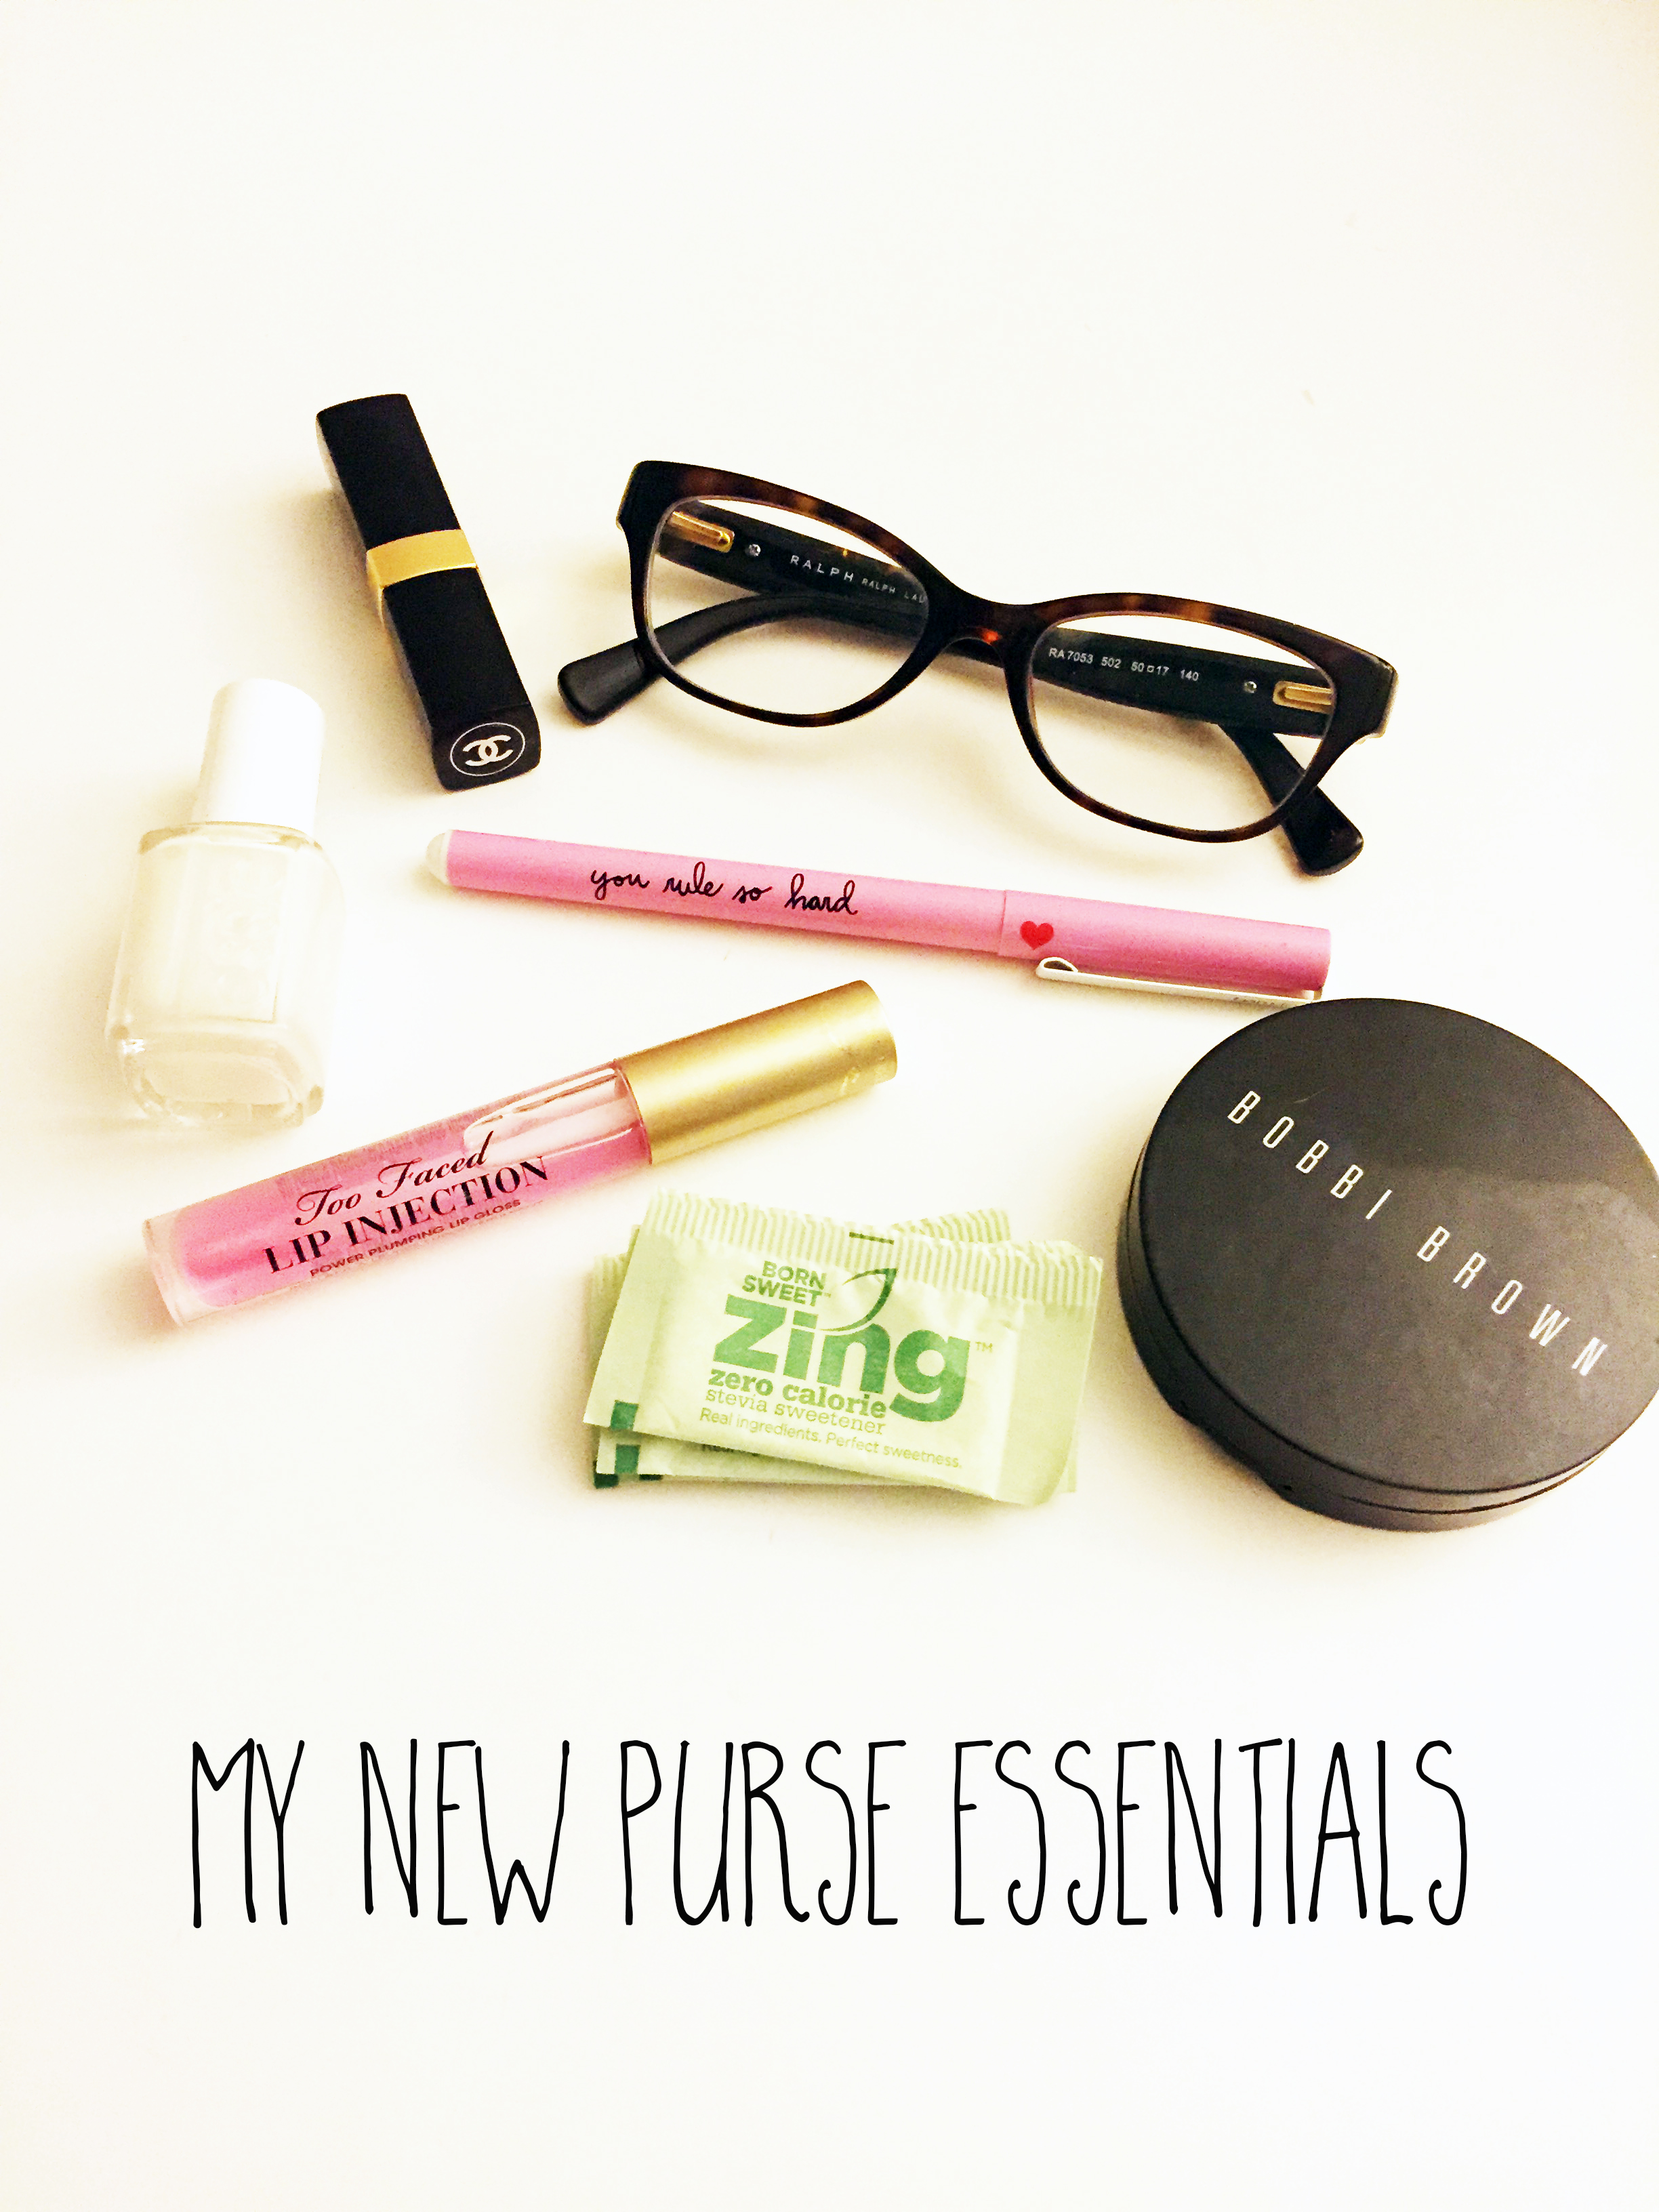 Purse Essentials